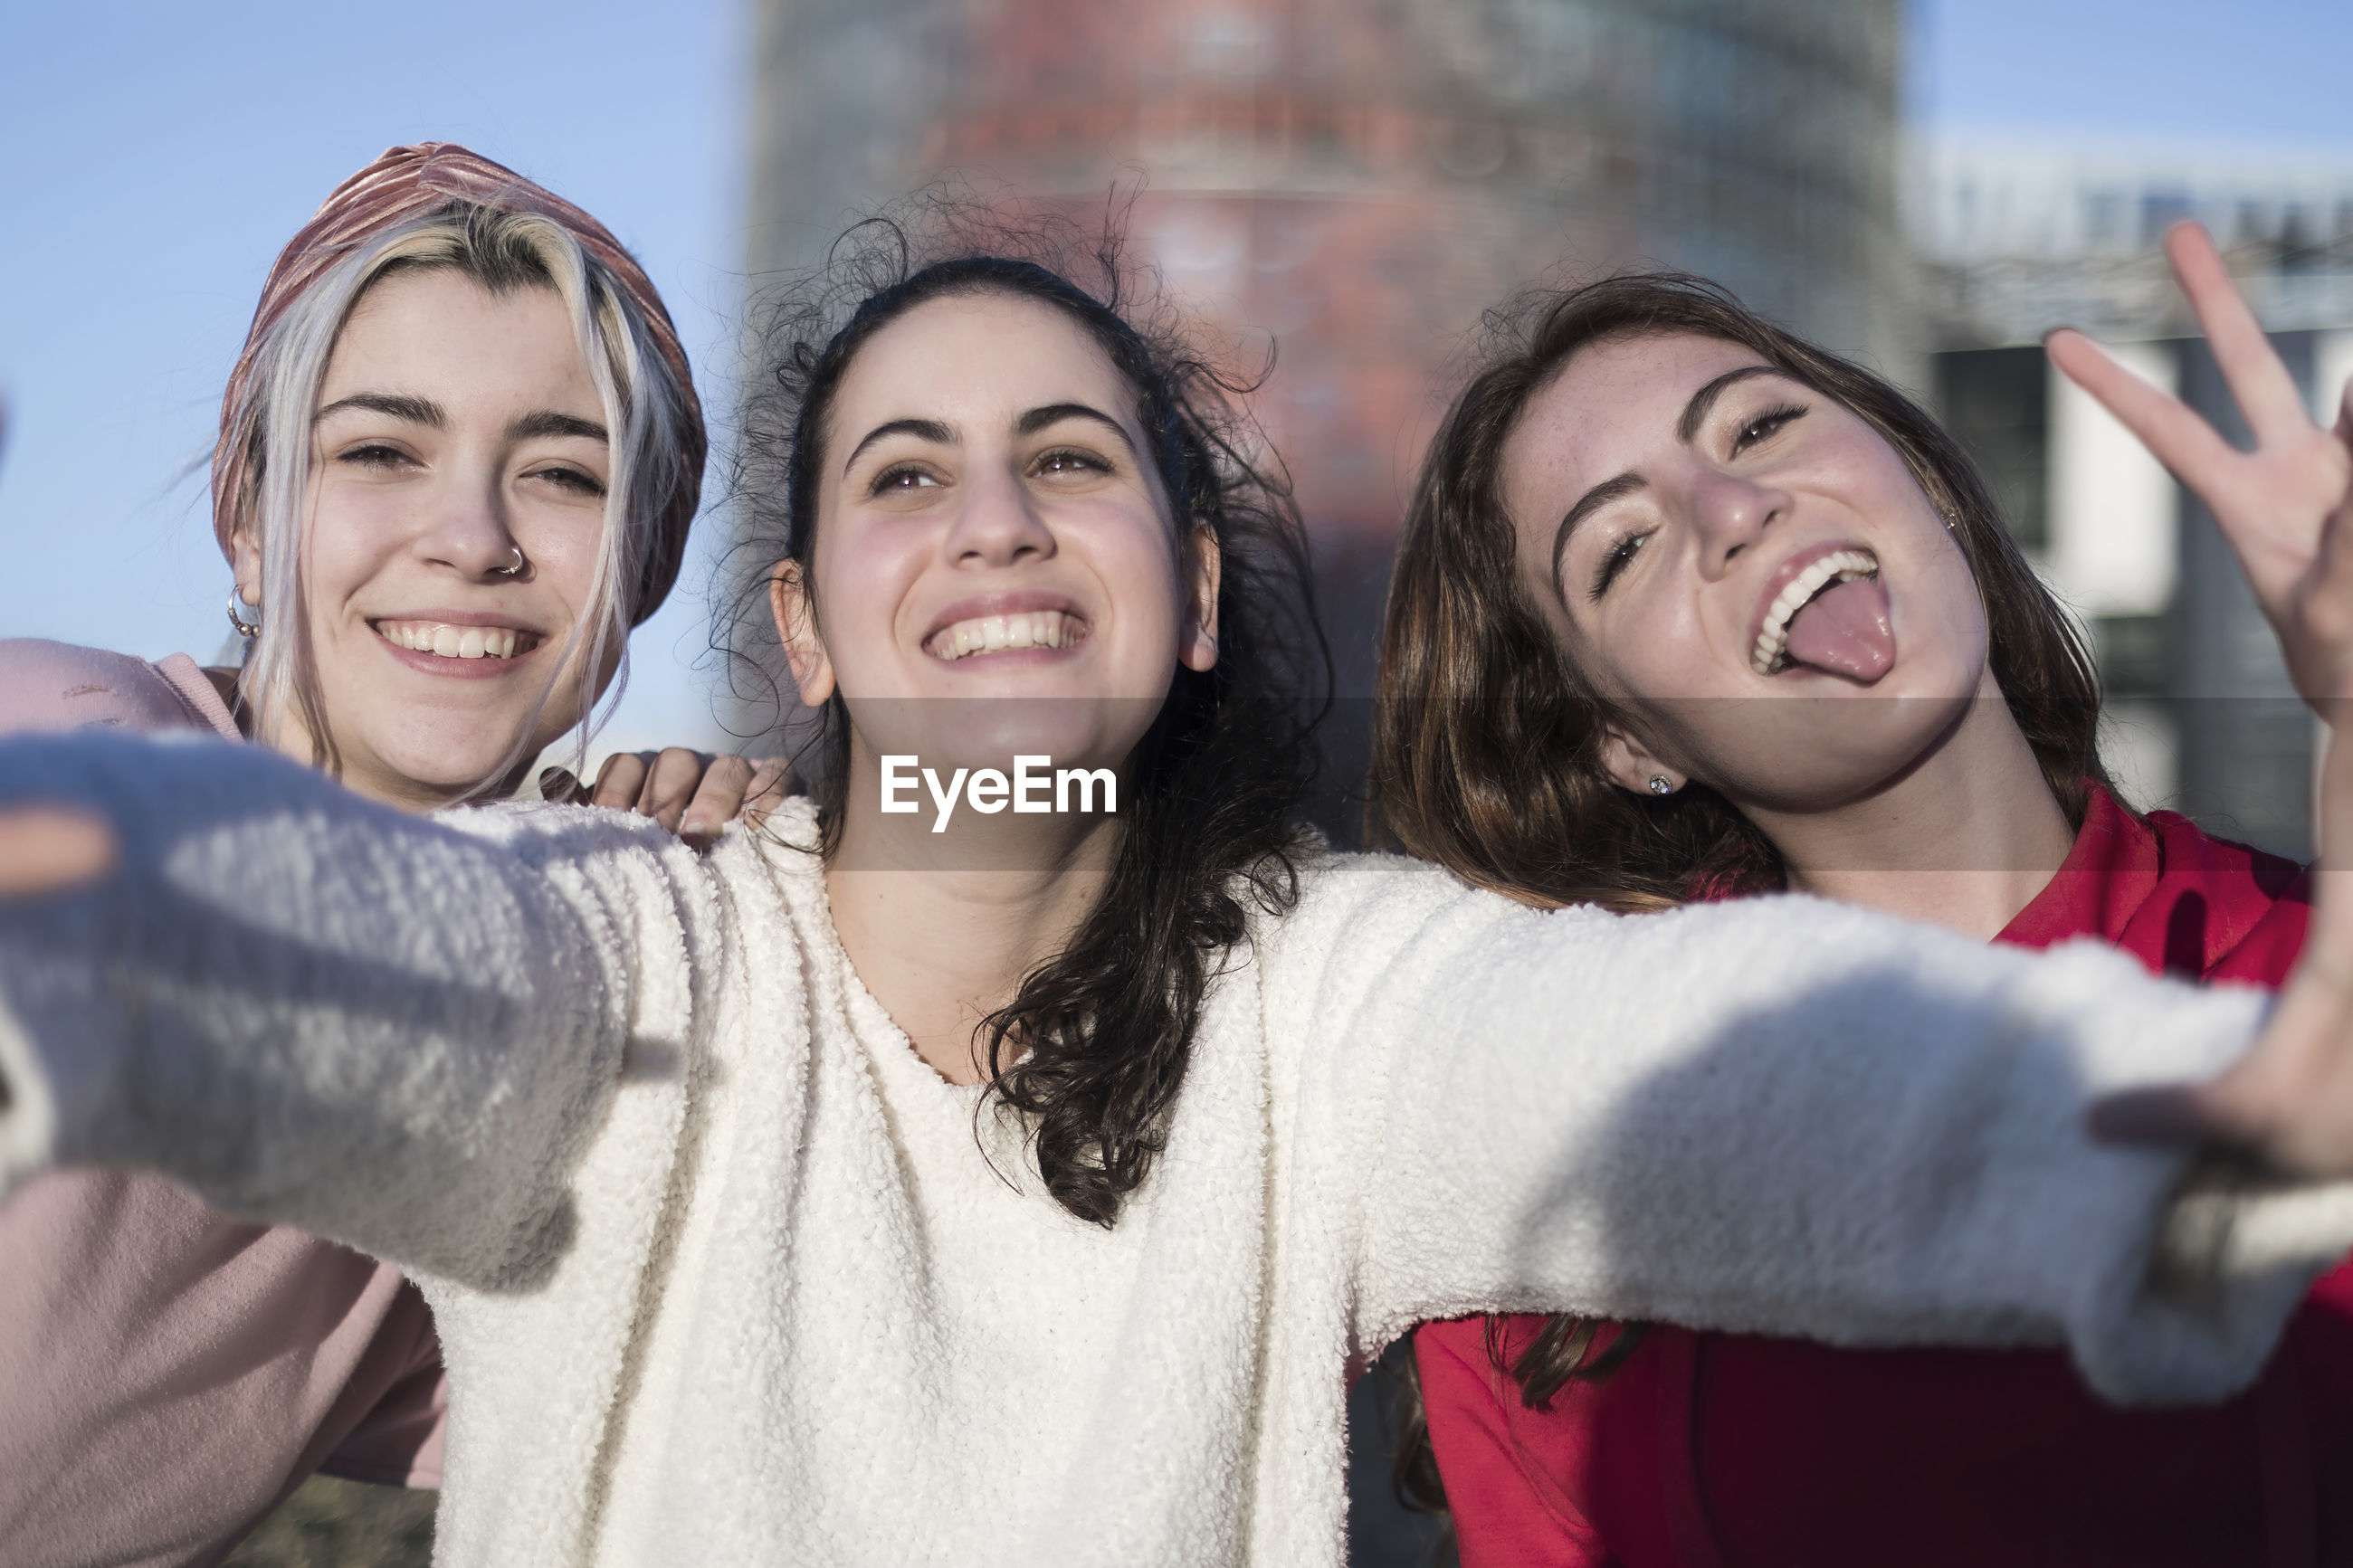 Portrait of smiling young woman with friends against building